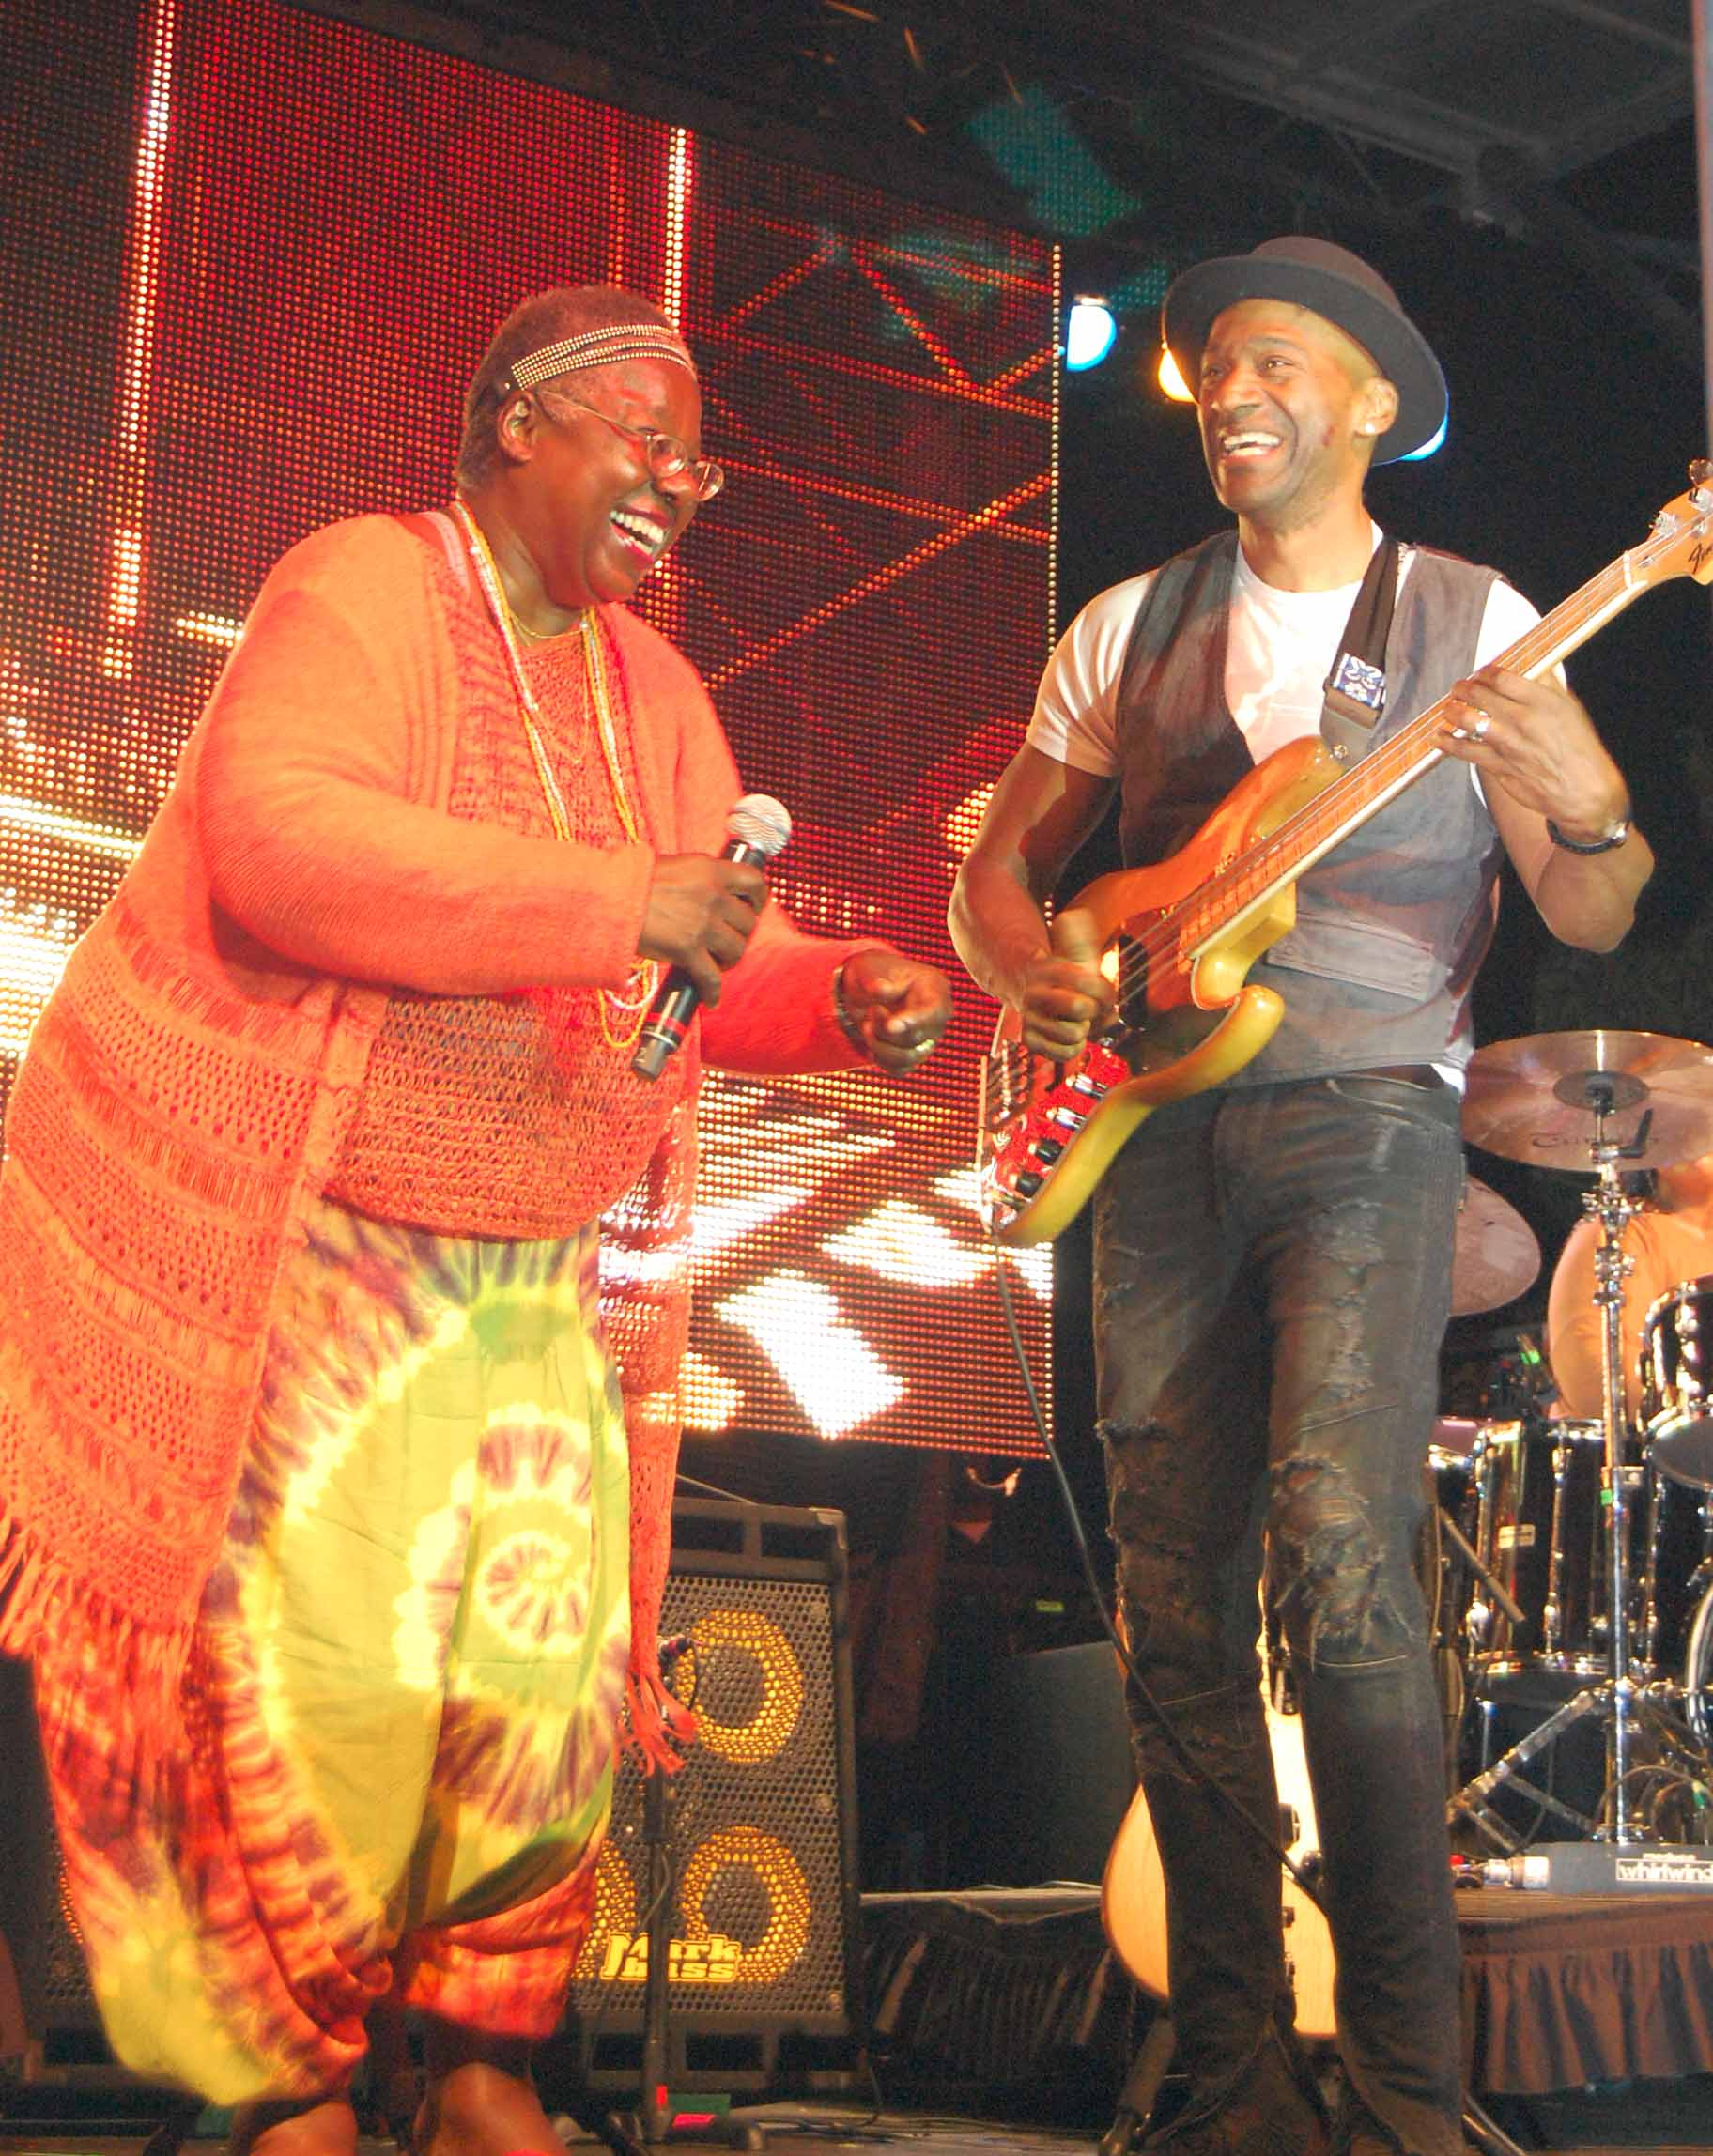 Randy Crawford and Marcus Miller. Photo by Kim Webster.